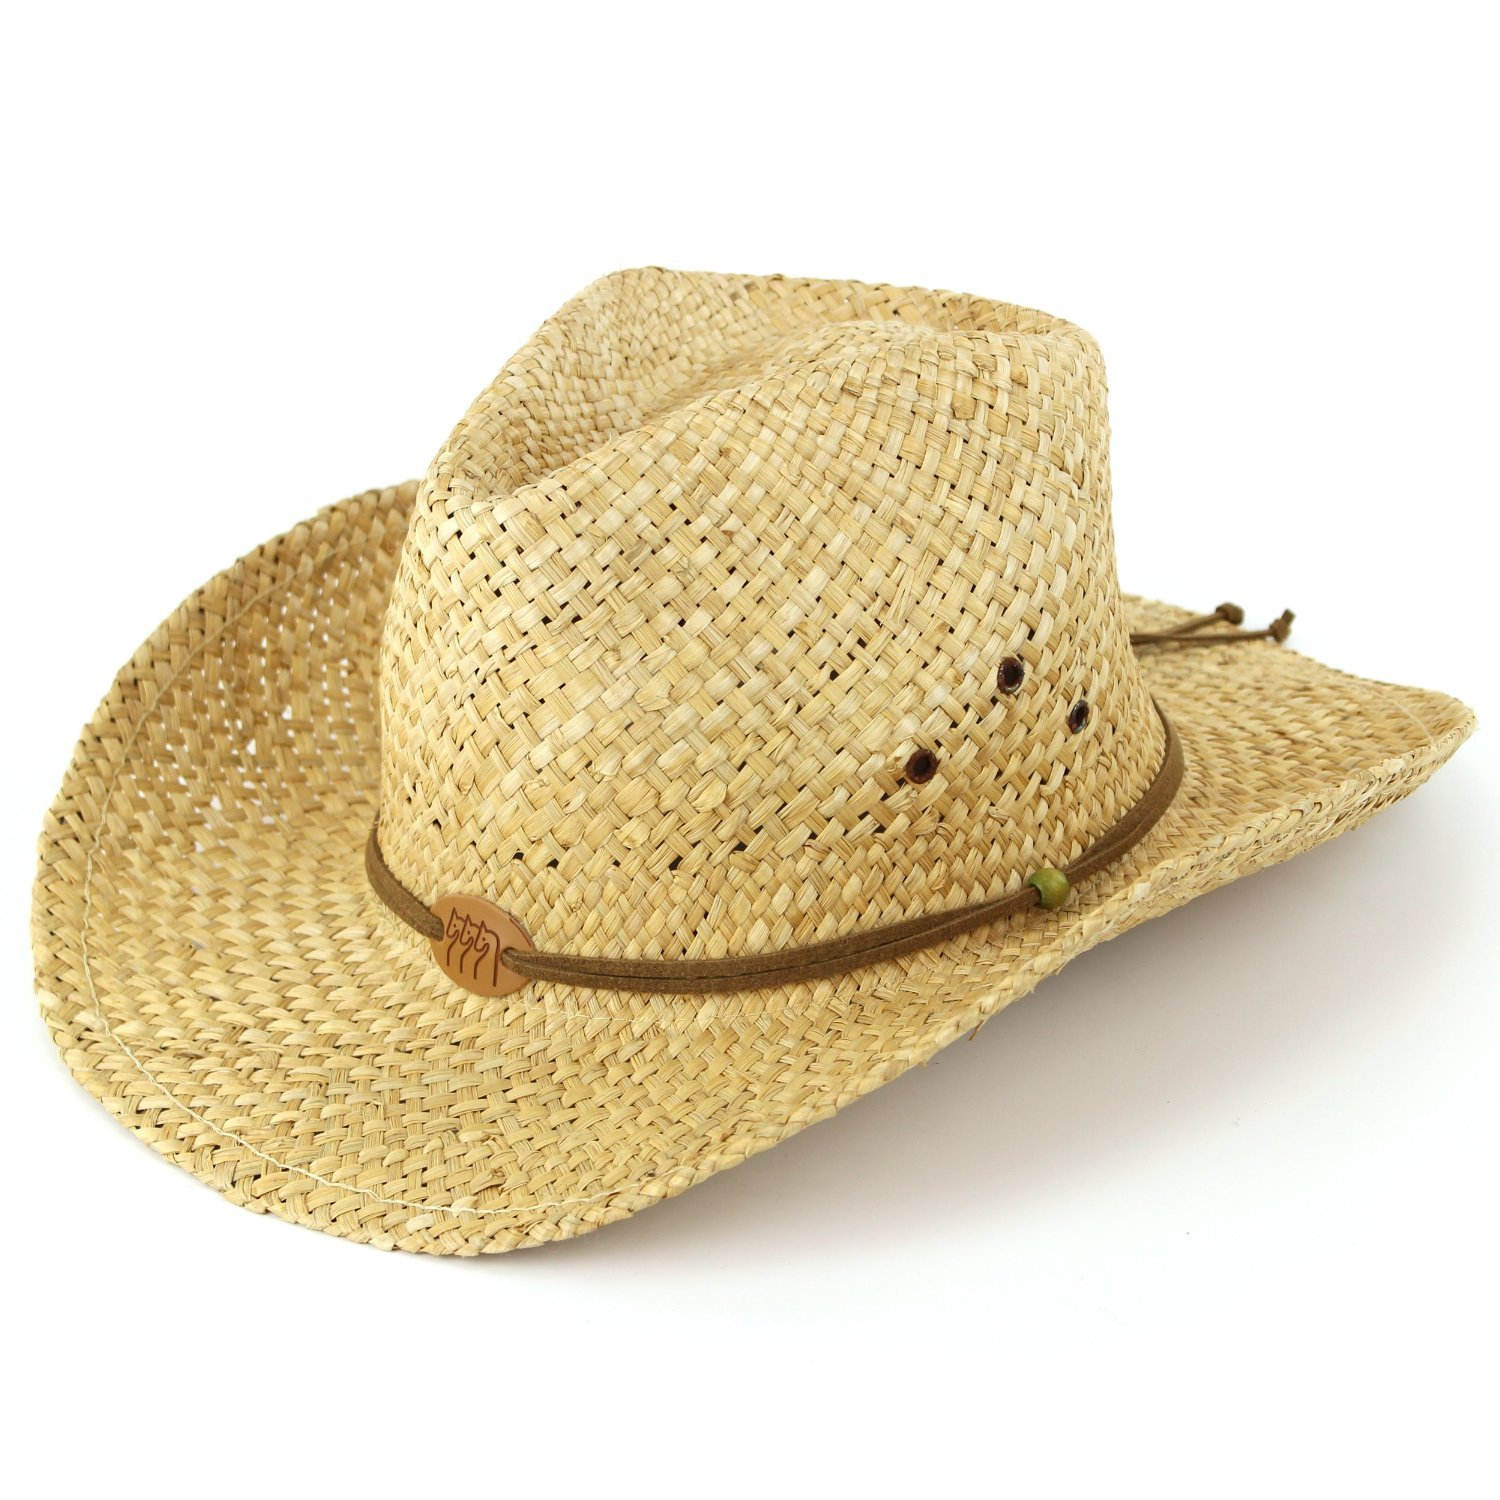 Straw cowboy hat with leather band detail and three horses badge. Natural